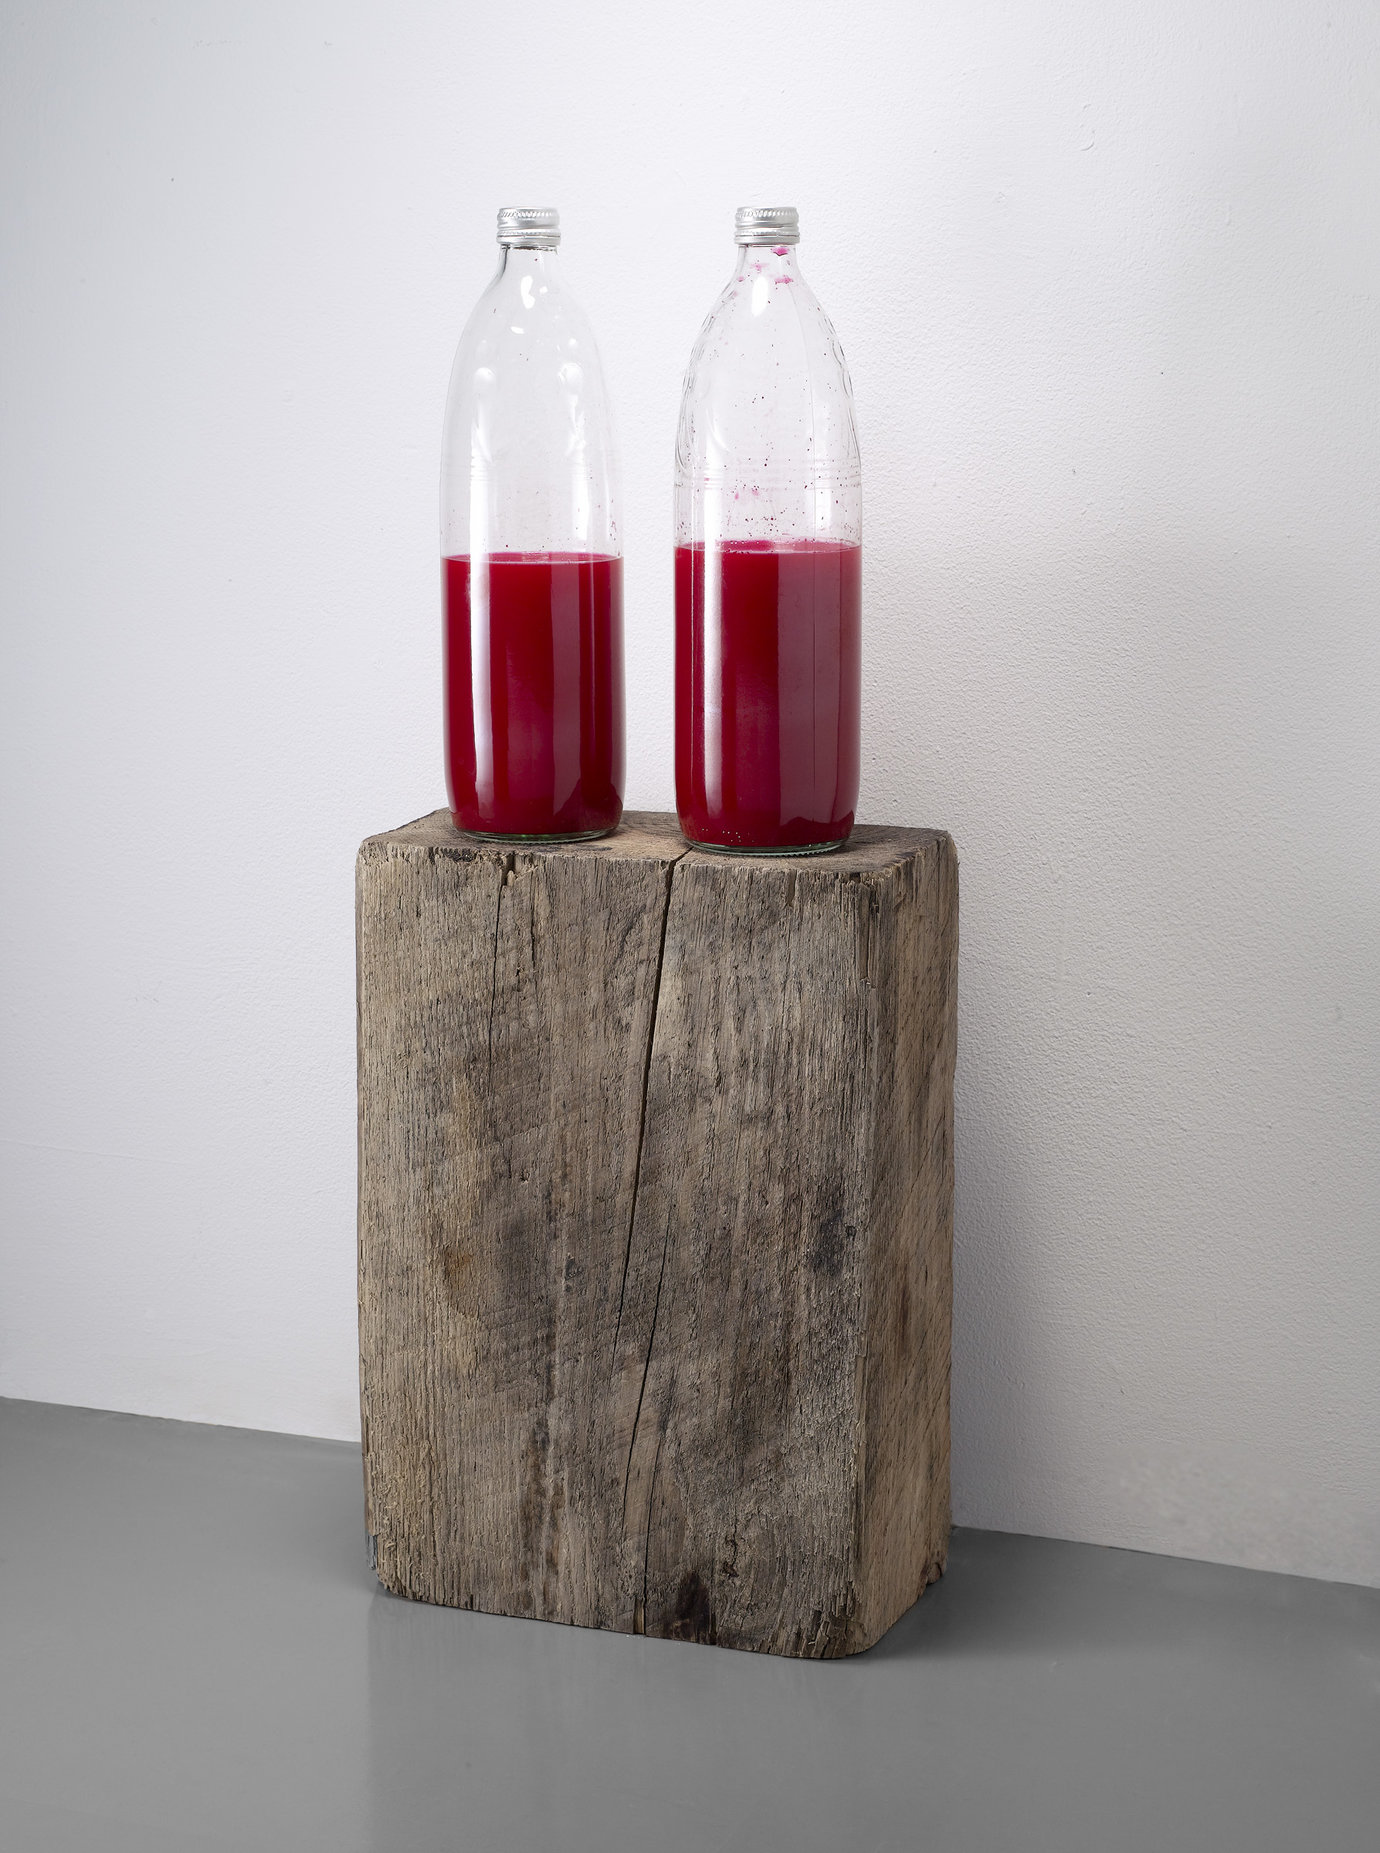 ", 2007. Wood block, glass bottles with metal screw lids, ink, water, 25-1/2"" x 10"" x 5"" (64.8 cm x 25.4 cm x 12.7 cm)."